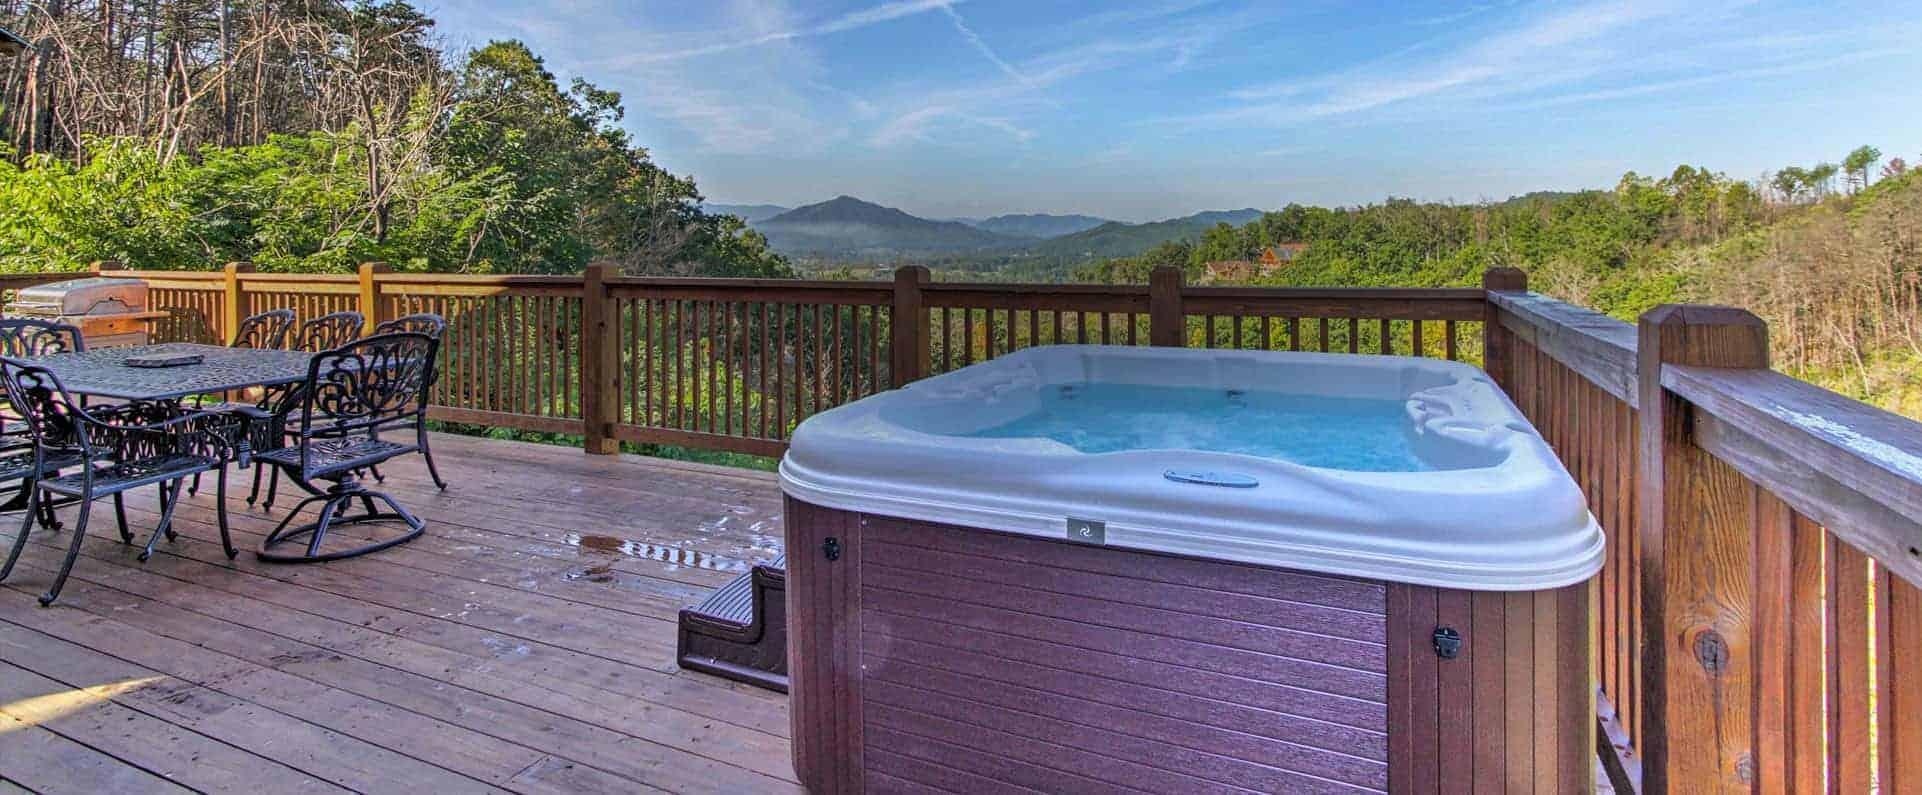 hot tub and patio furniture at a cabin